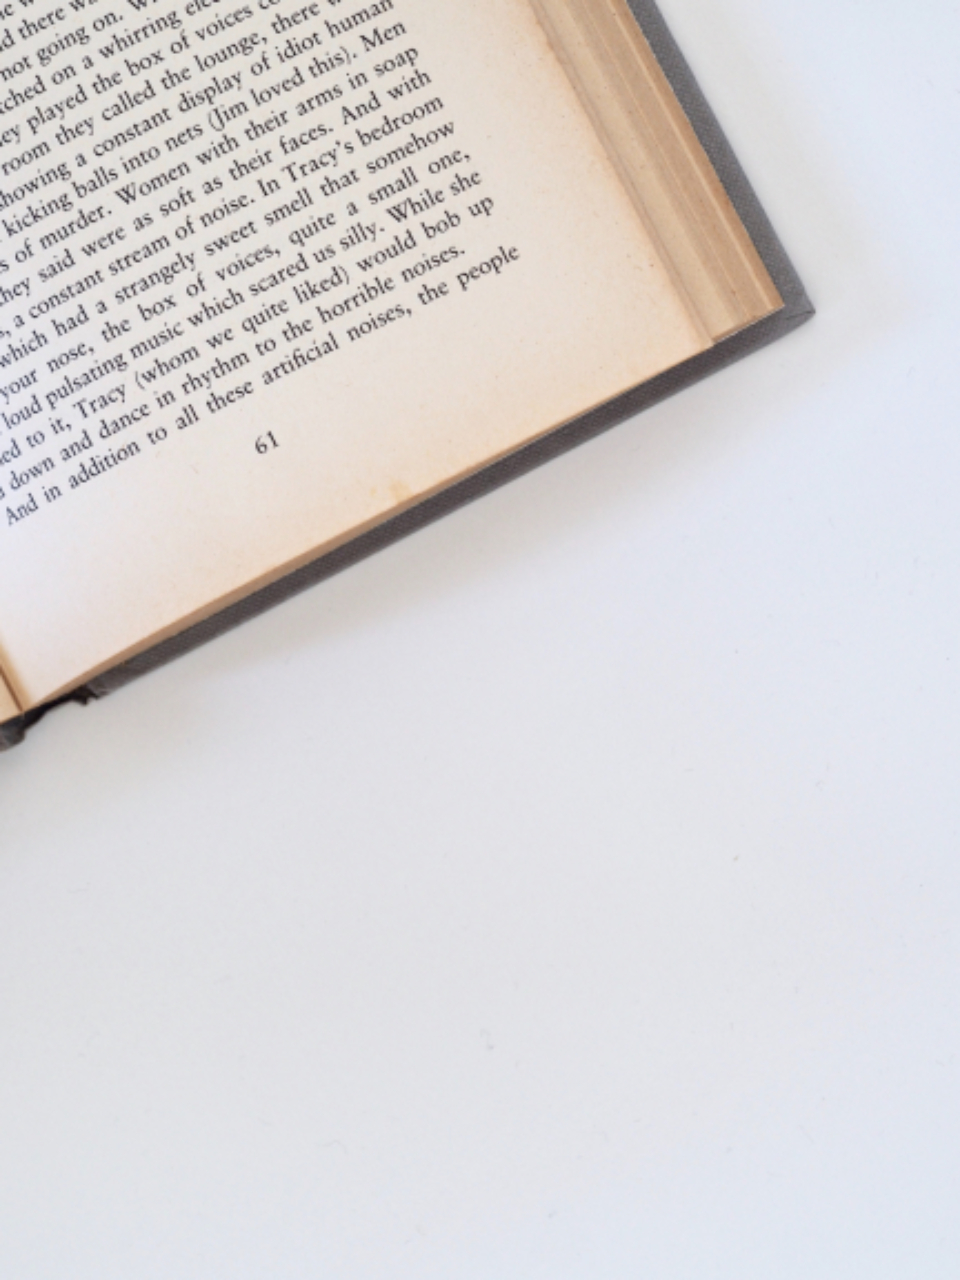 Free stock photo of old book